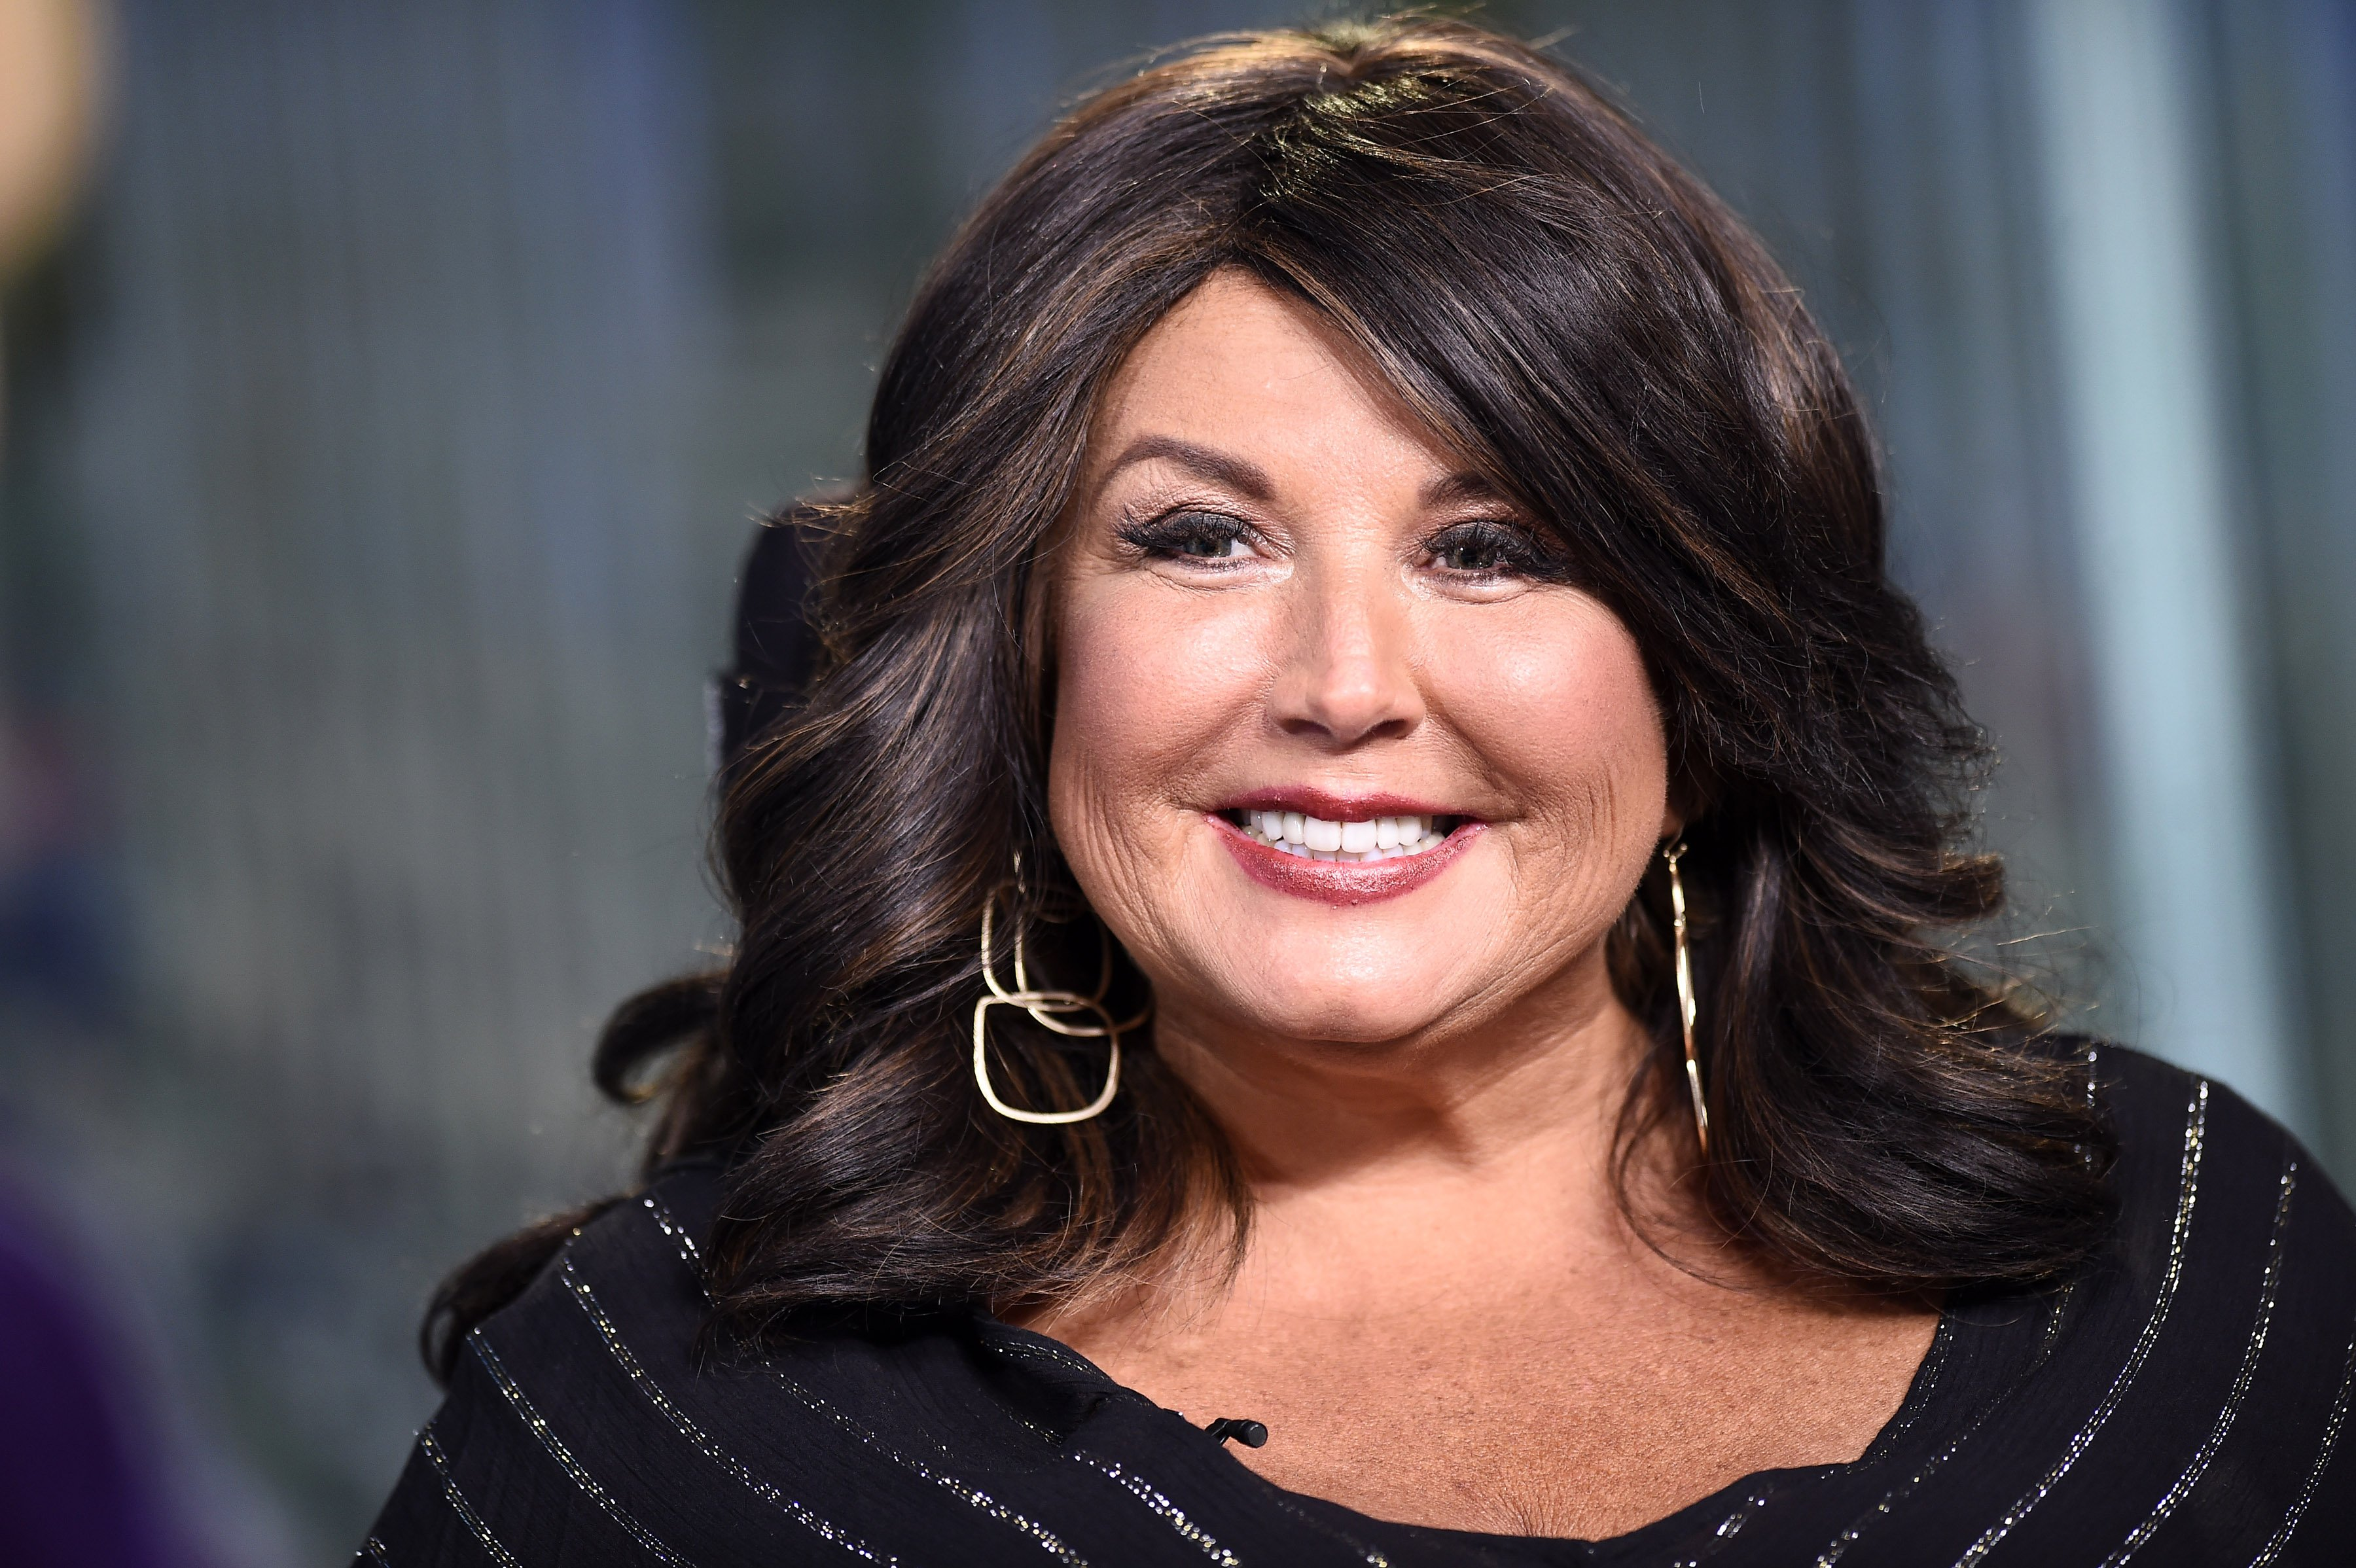 Abby Lee Miller visits the set of 'The Claman Countdown' at Fox Business Network Studios on July 10, 2019 in New York City | Photo: Getty Images